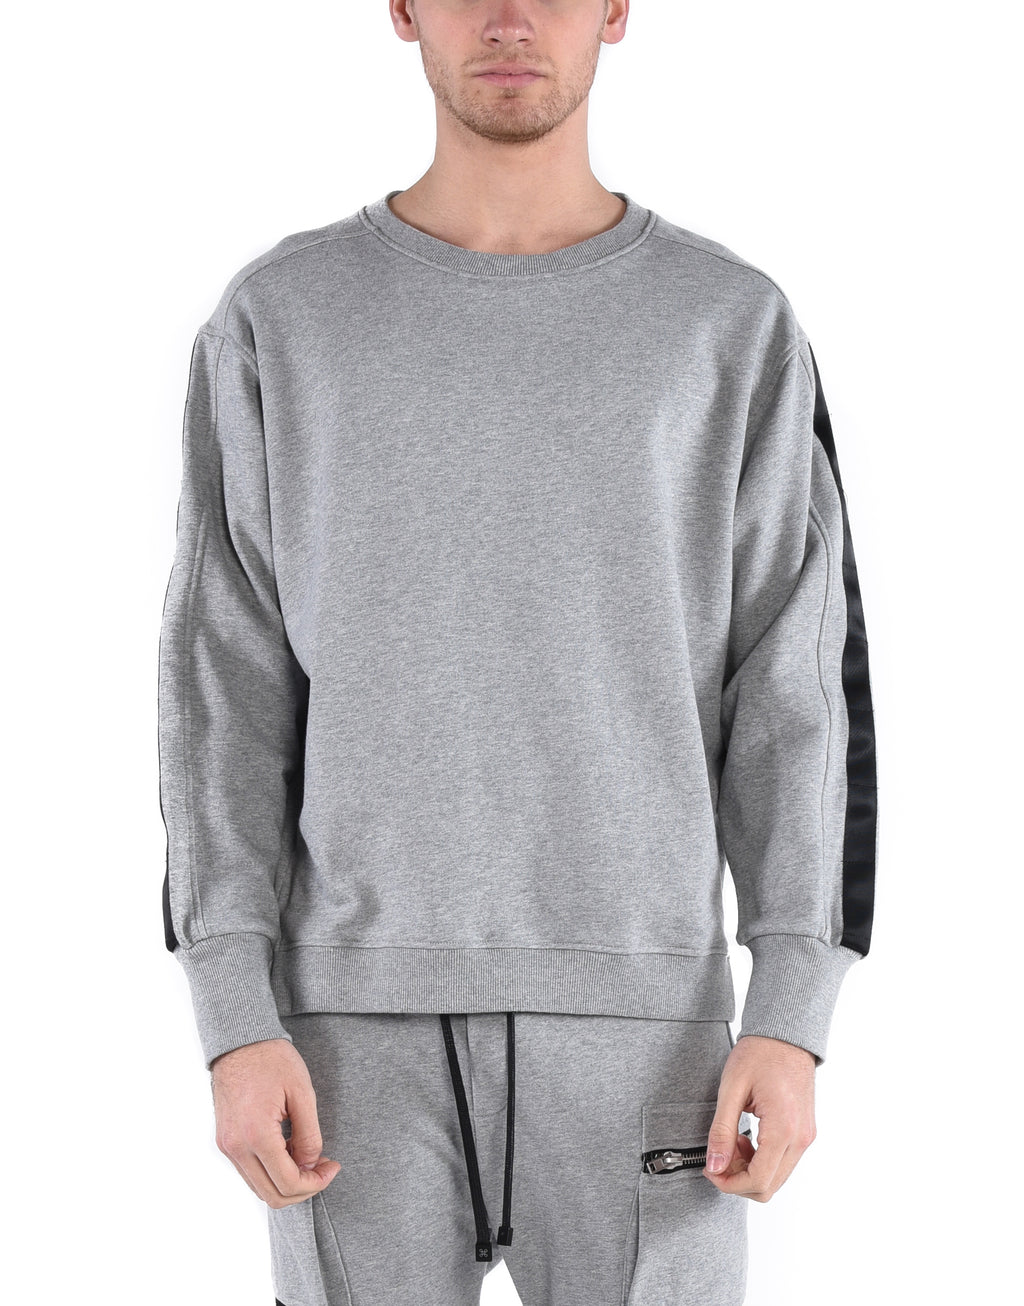 PARACHUTE CREW SWEATSHIRT - GREY - HIP AND BONE